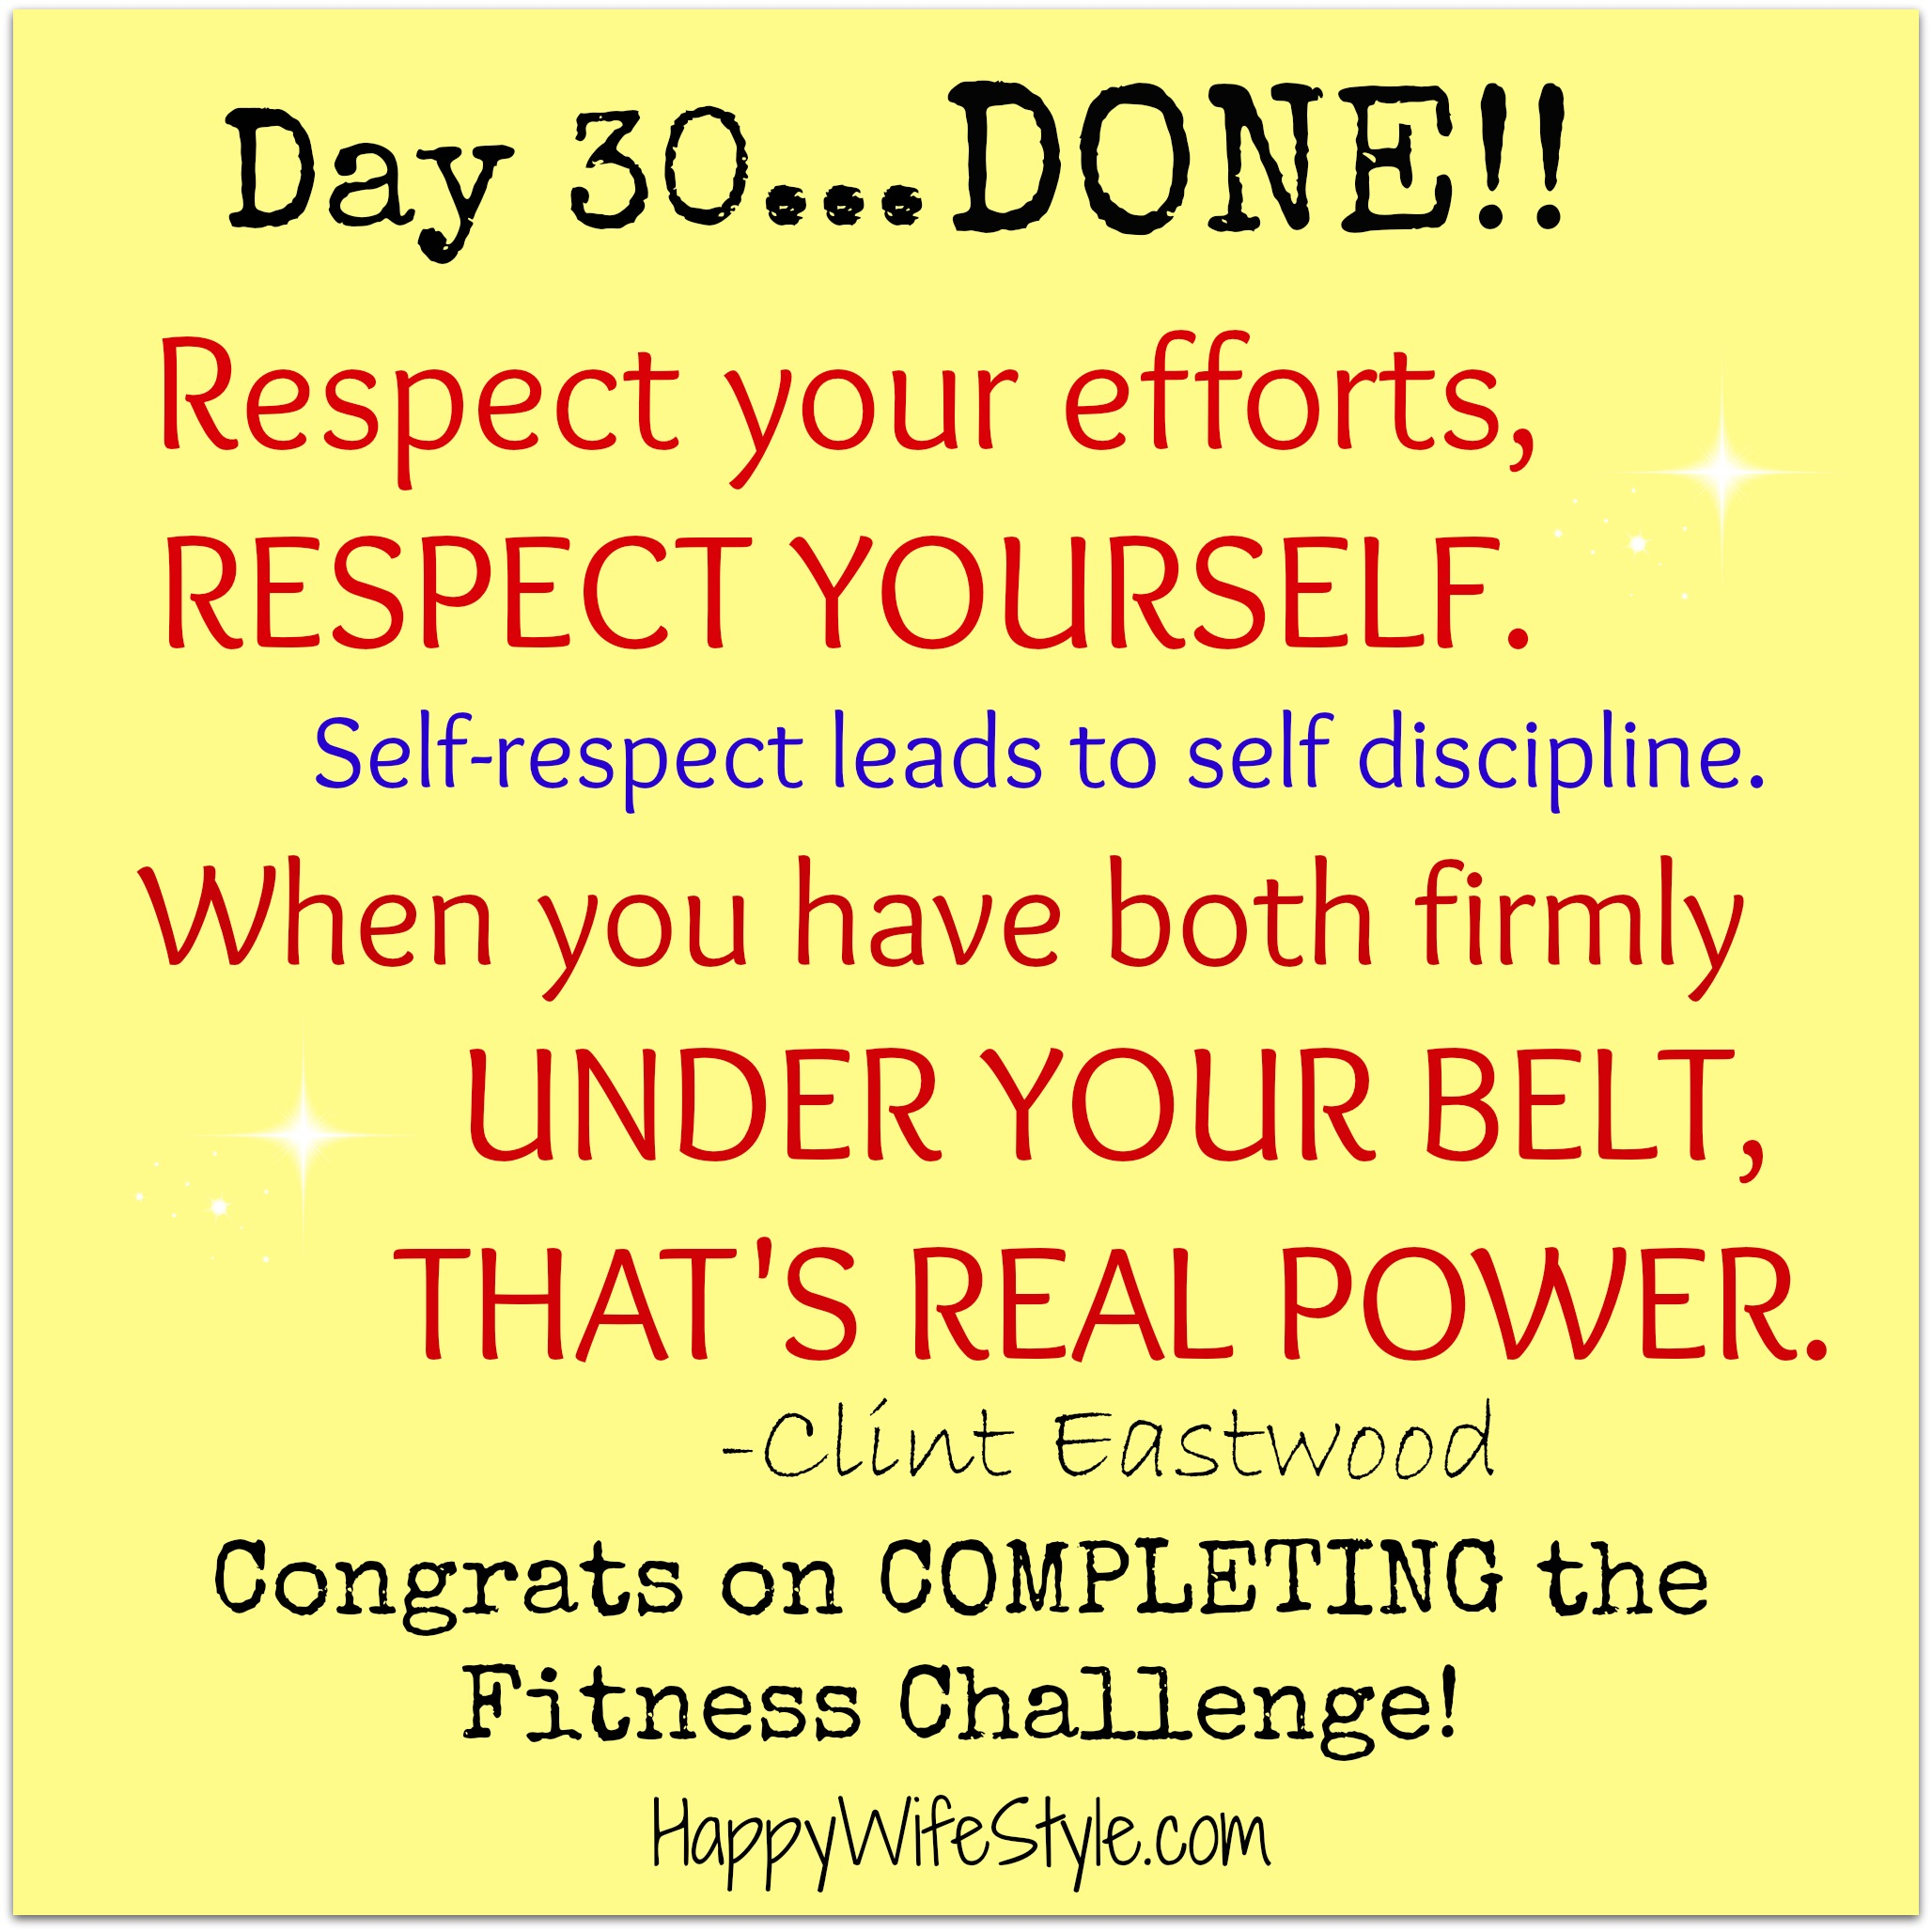 Day-30-done